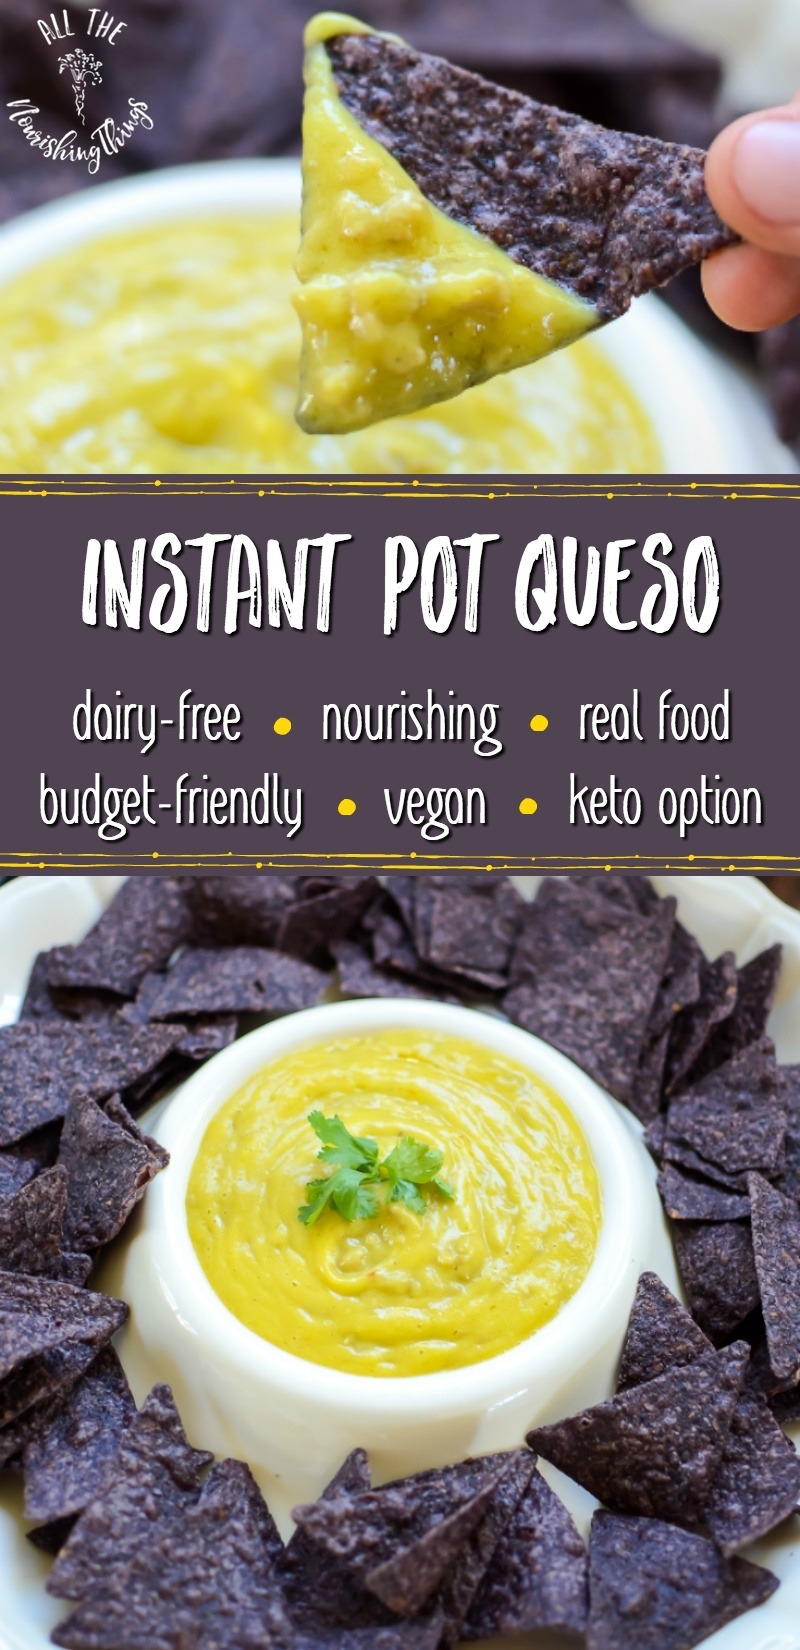 blue corn chips with yellow cheese dip and text overlay